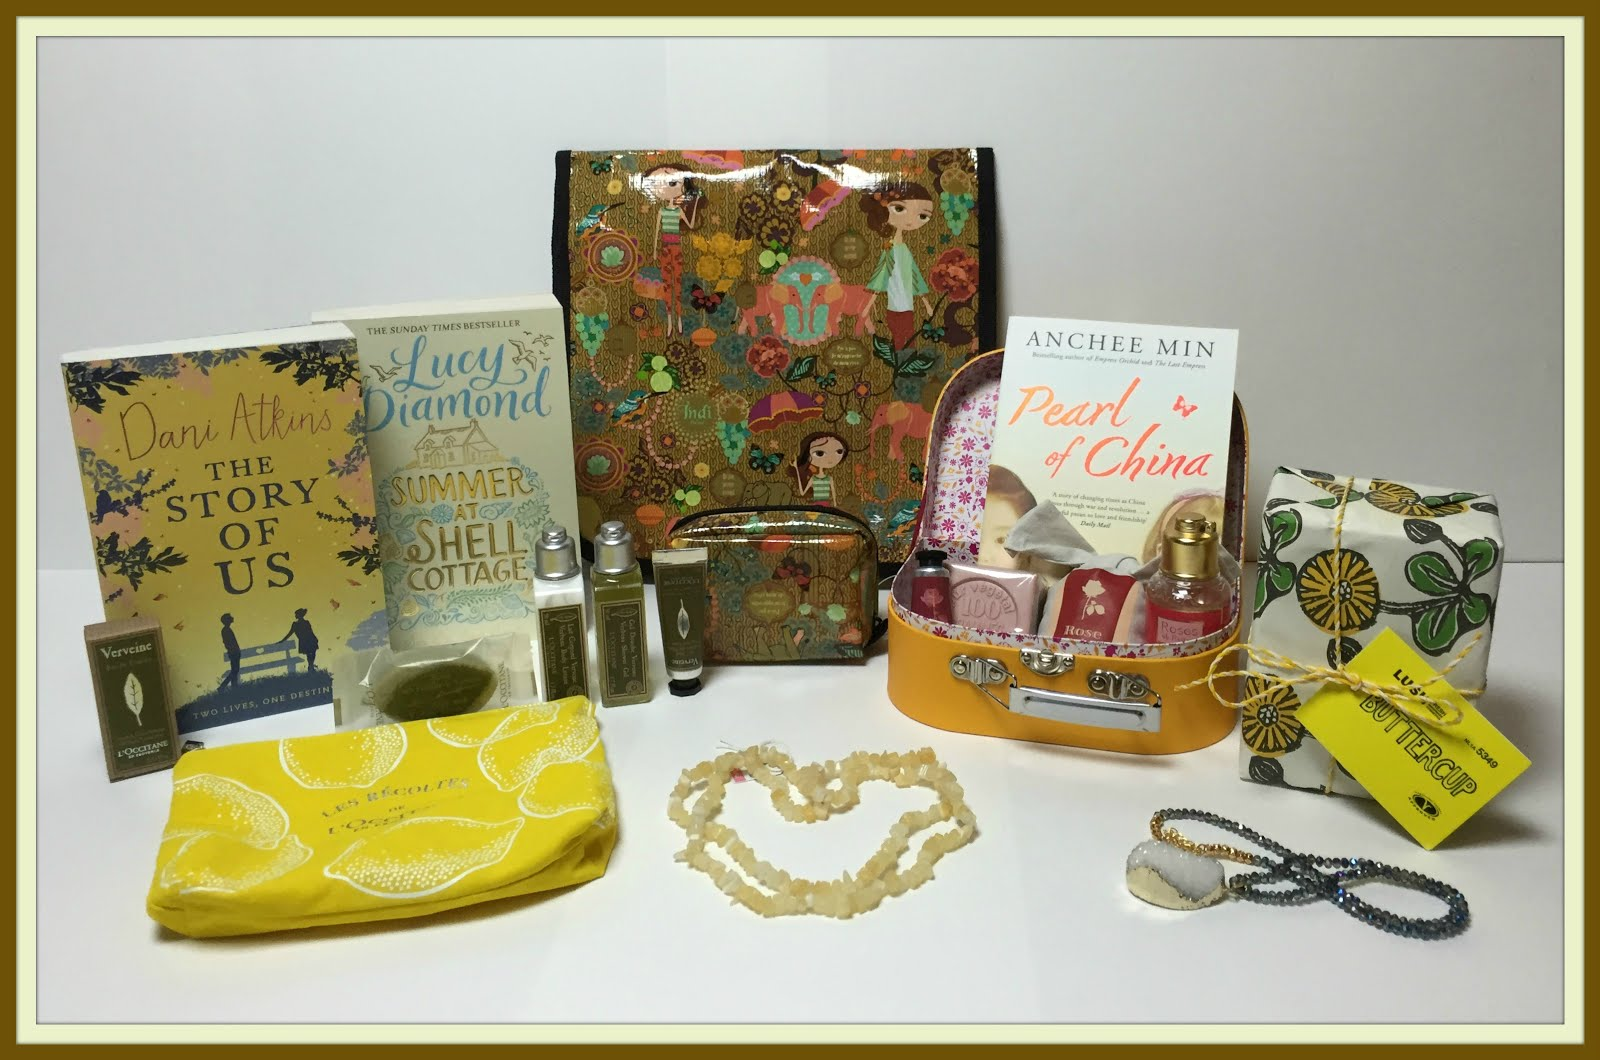 L'Occitane, Lush, Books & Gemstone Necklaces